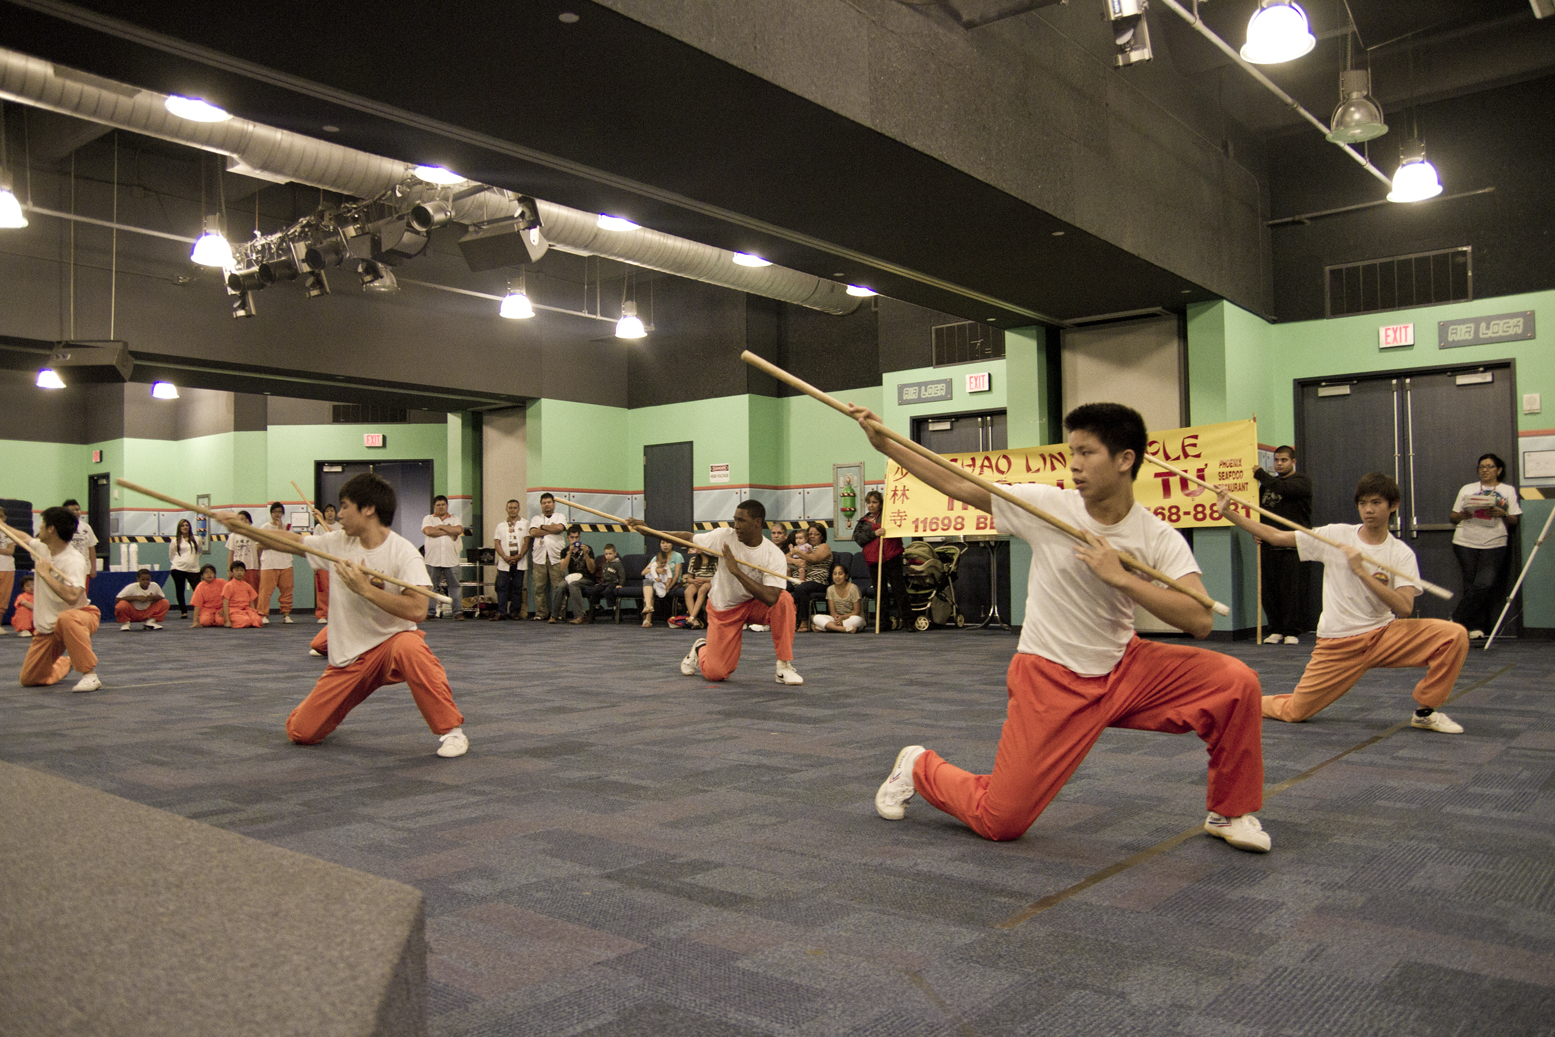 houston-shaolin-lakewood-church13.jpg